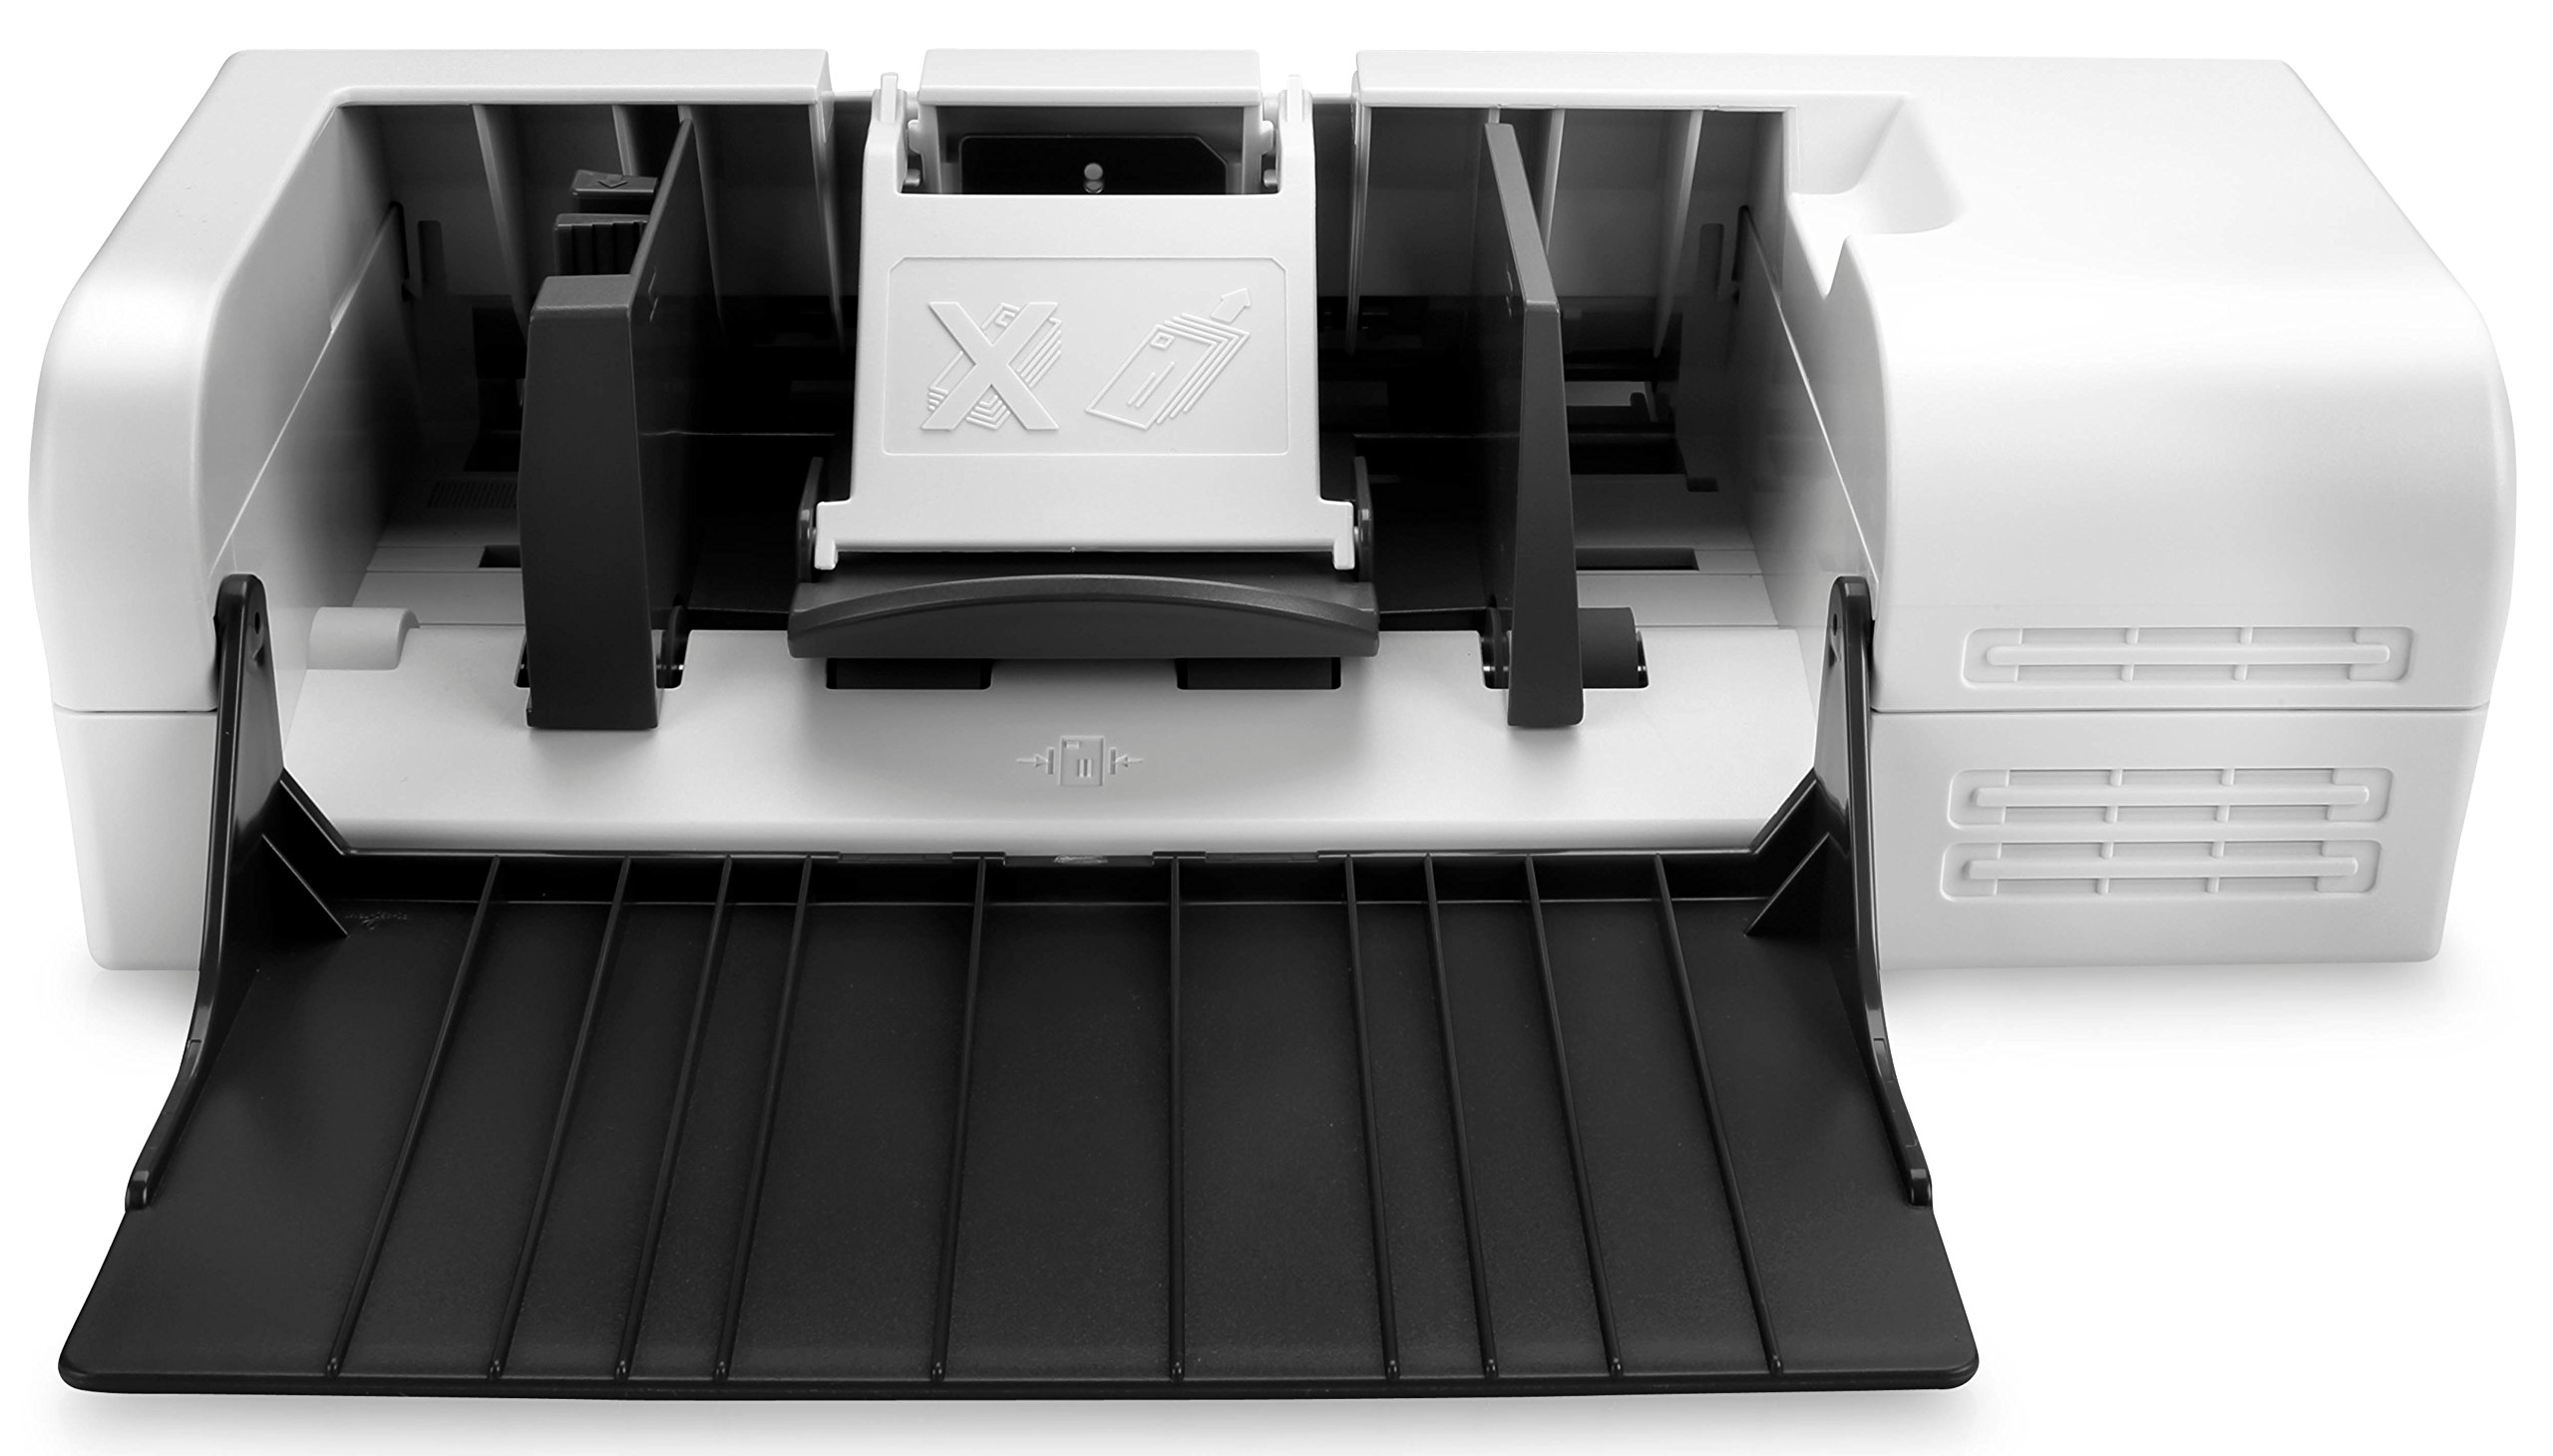 HP F2G74A Envelope Feeder - 75 Sheets